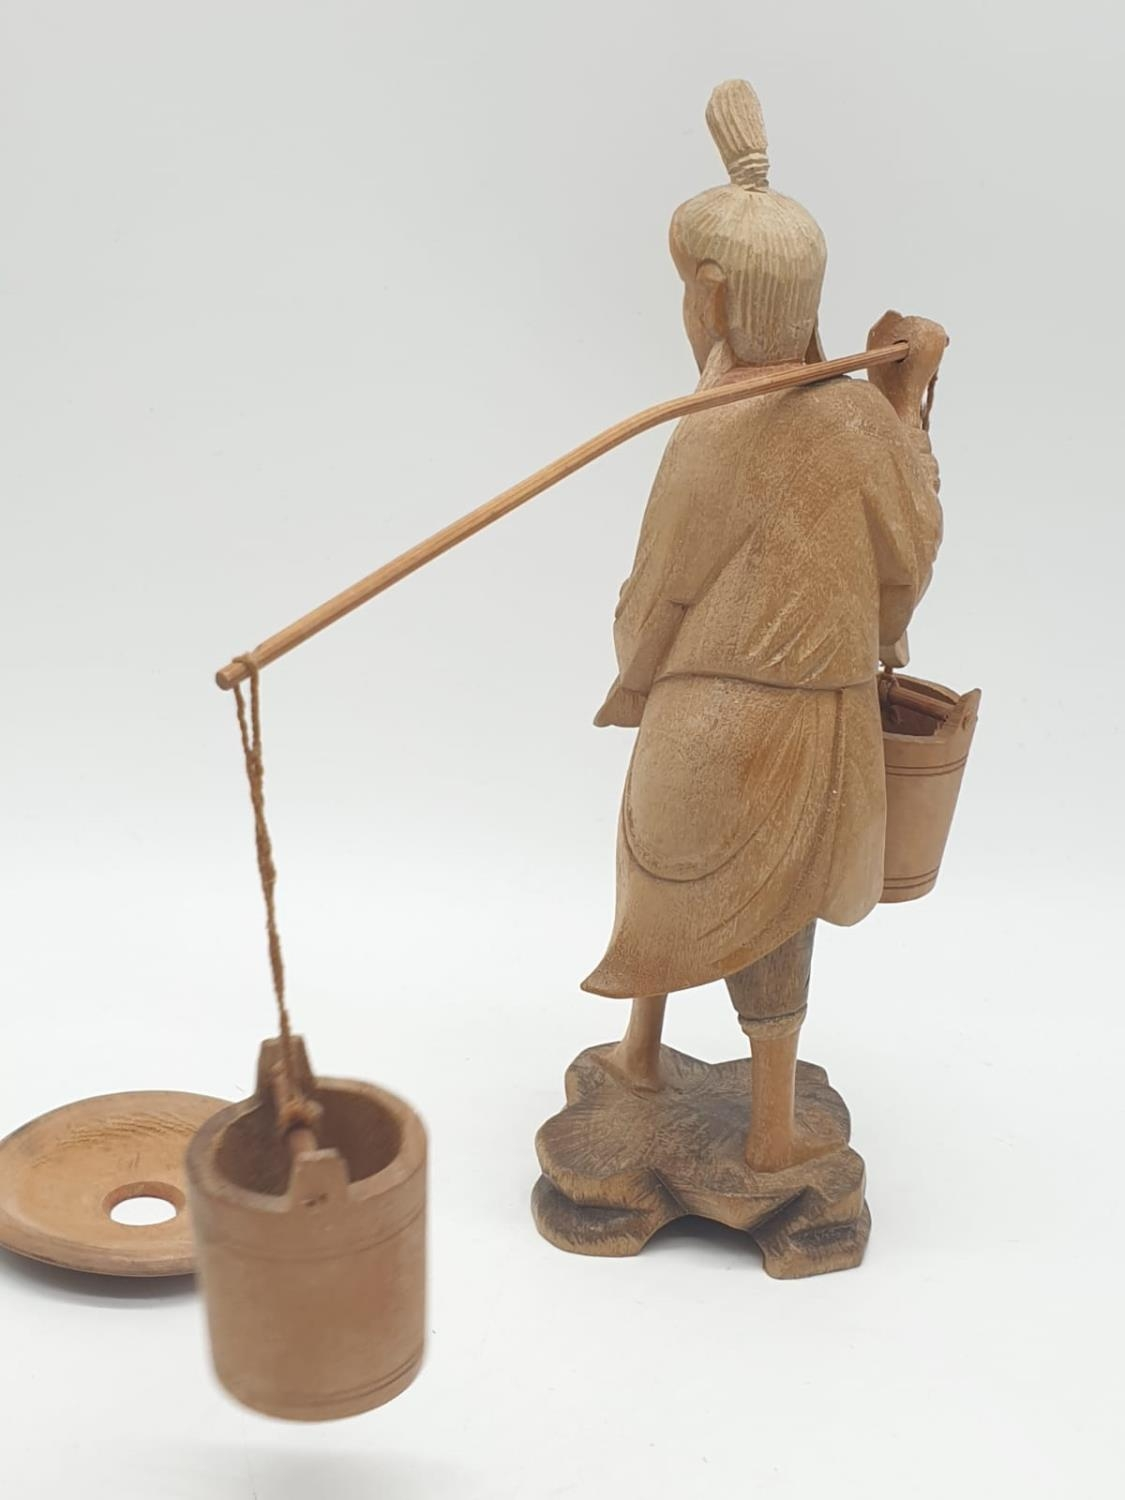 Hand carved wooden figure a Chinese pedlar. 20cm tall. - Image 4 of 7